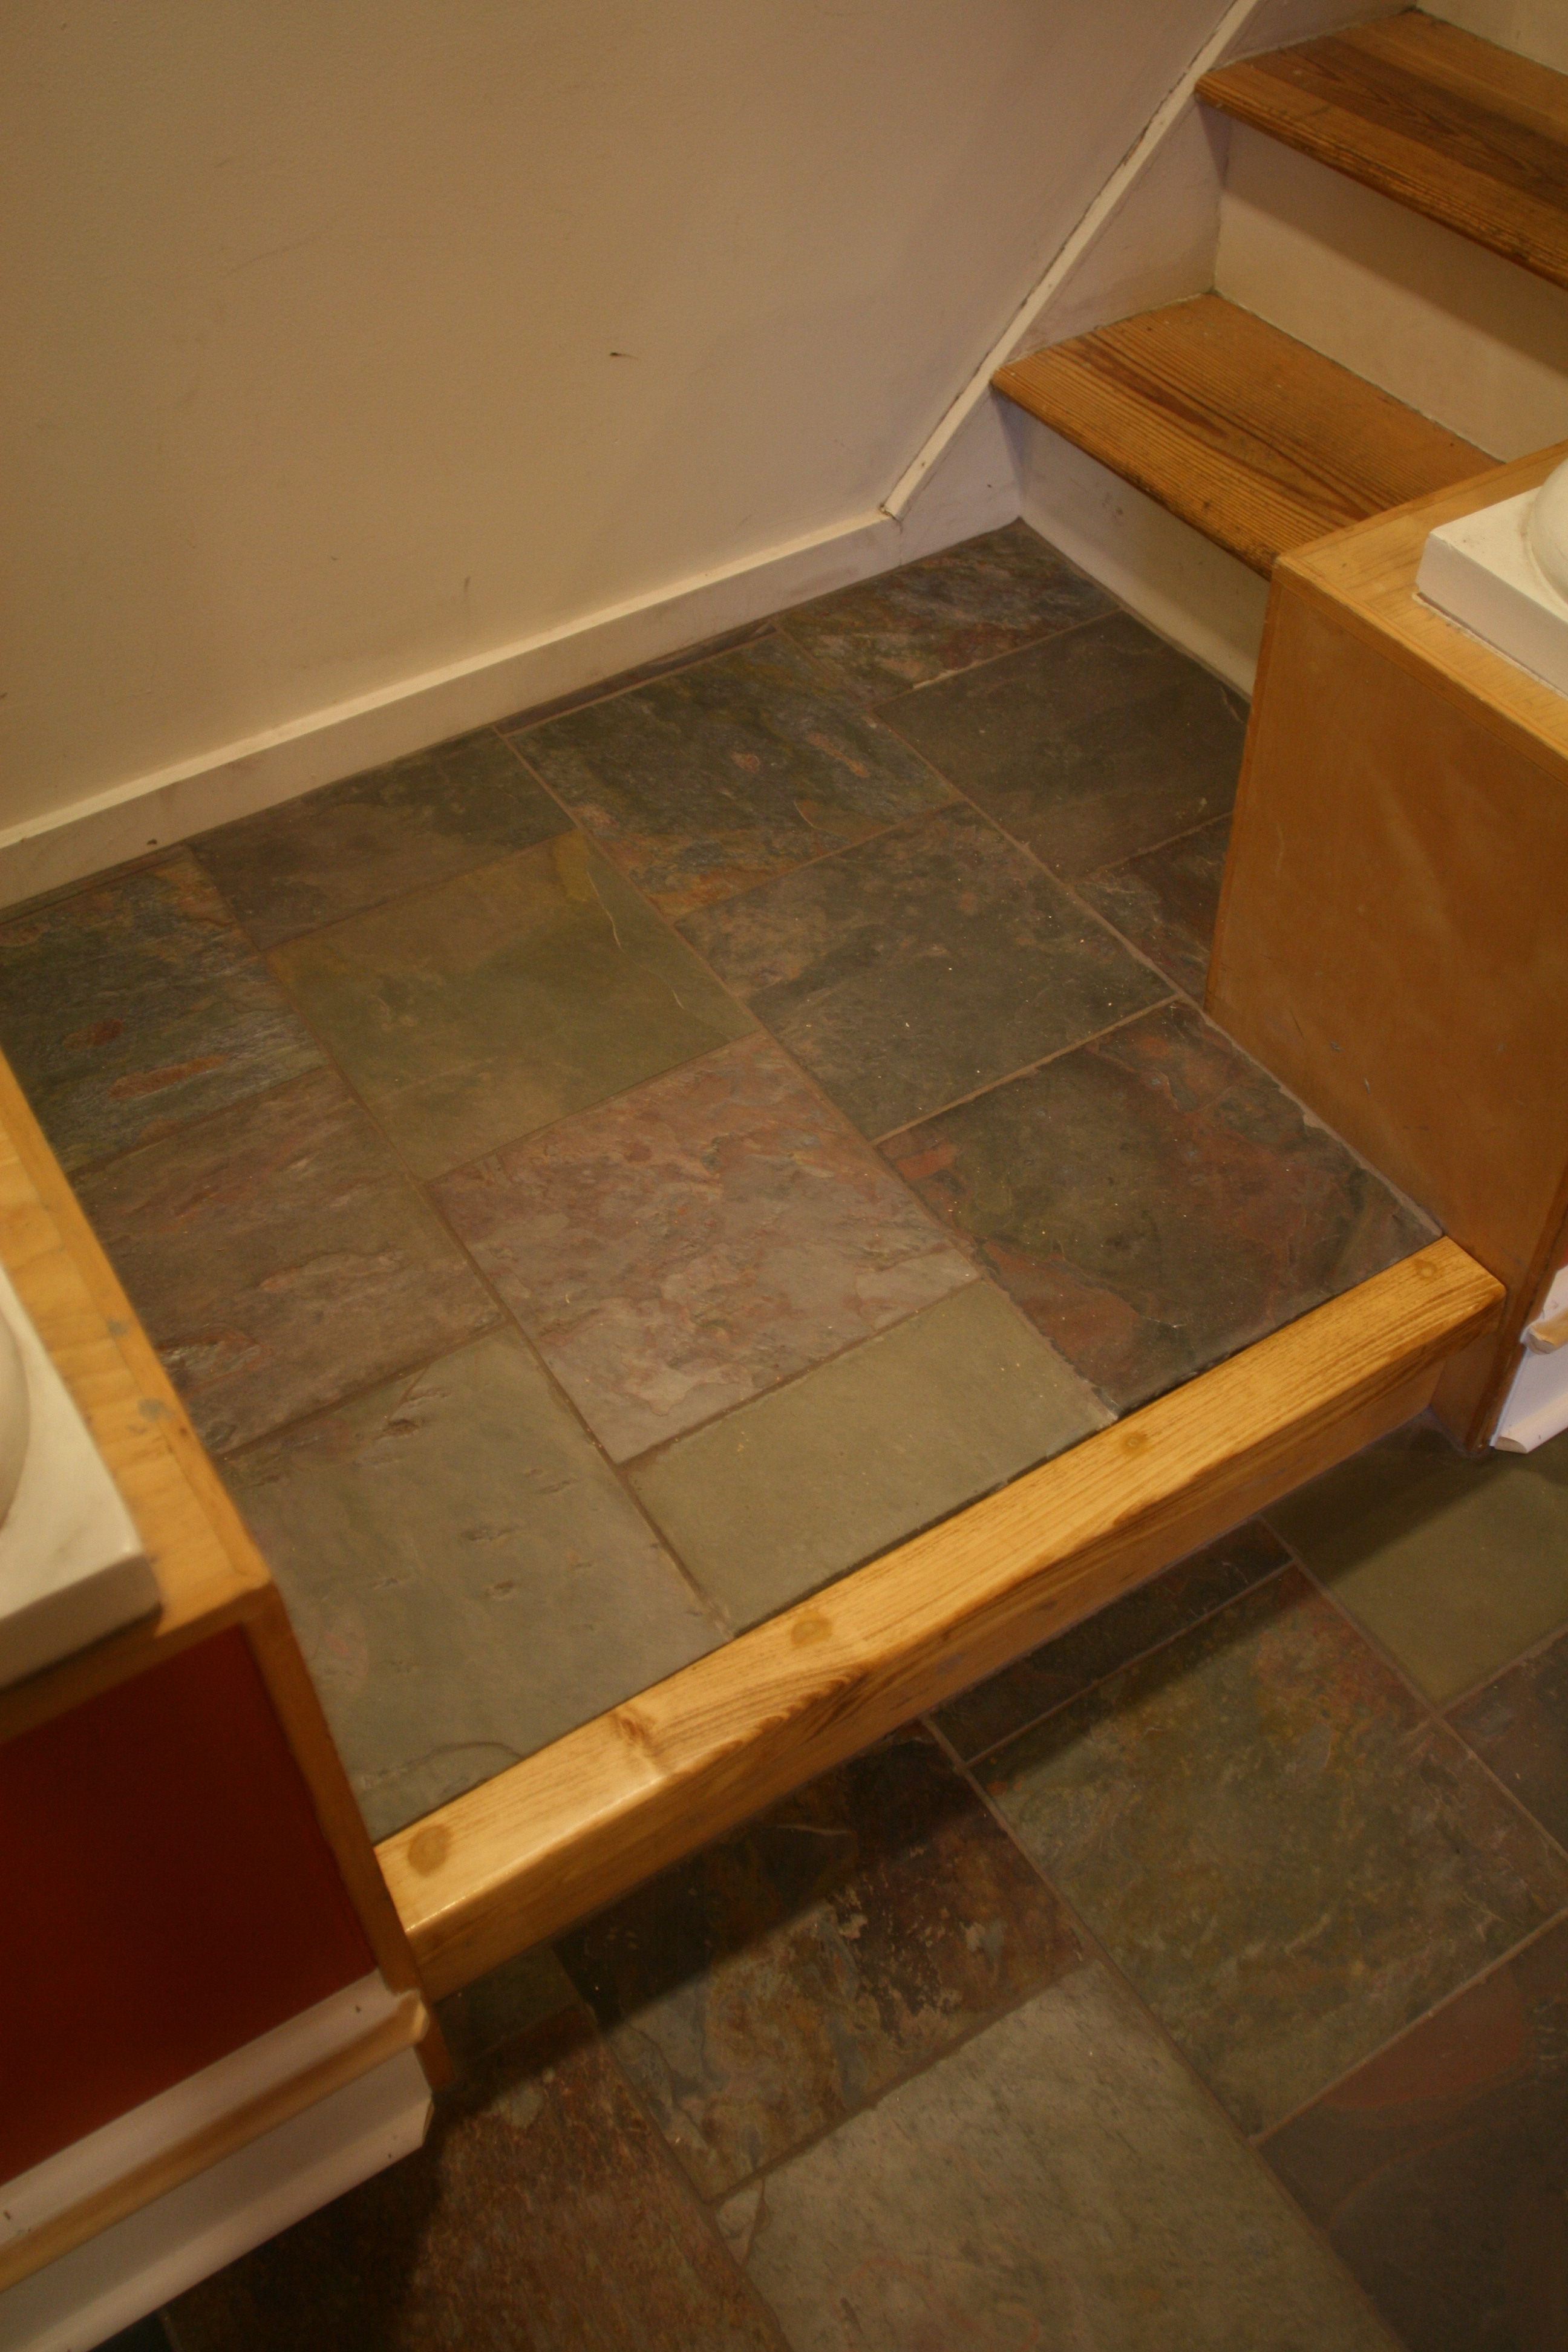 Slate floor new baseboard manayunk phila pa aaron whomsley llc the clients and i also decided to tile the step at the base of the rear staircase a custom riser was made to cover the rough edge of the tile and cap dailygadgetfo Image collections